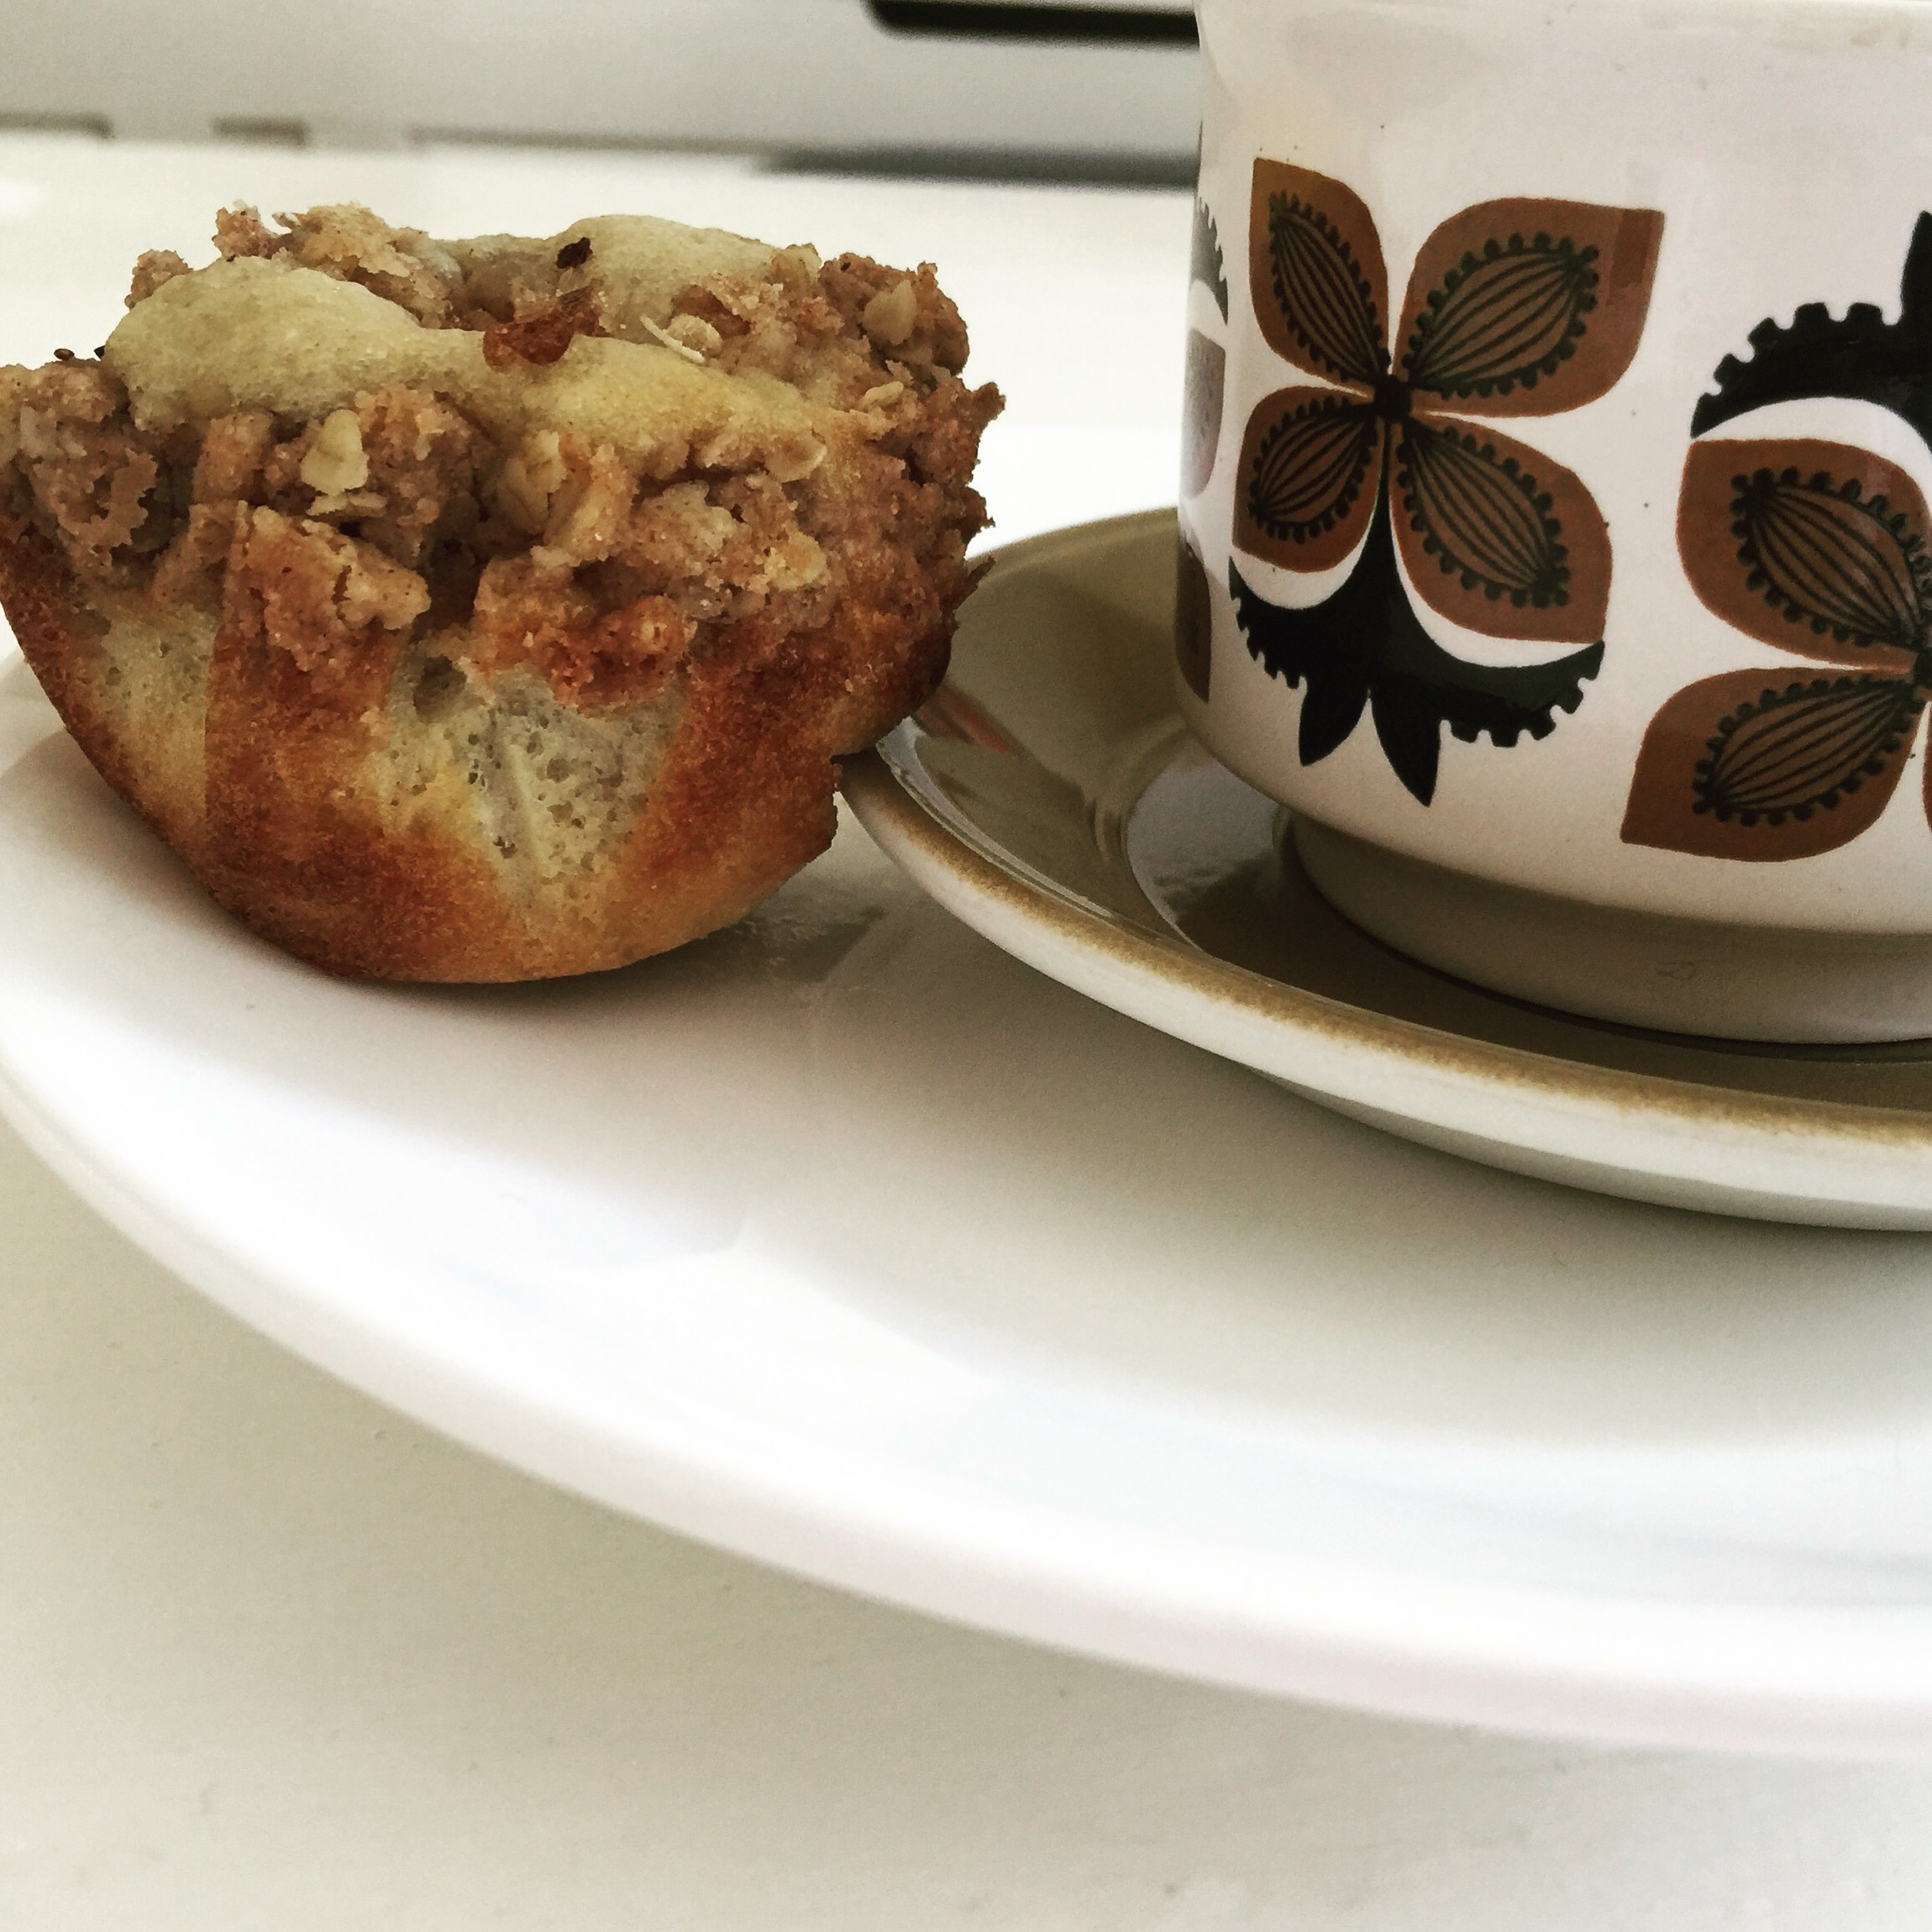 picture of muffin and coffee